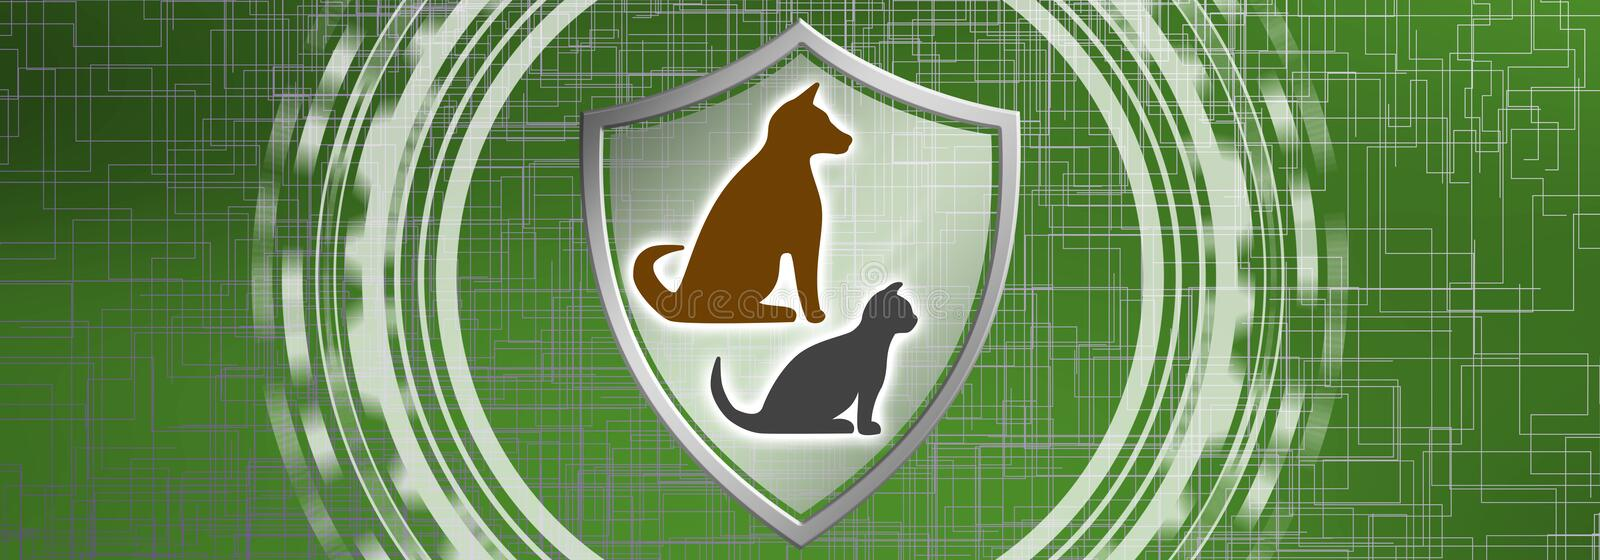 Concept of pet protection vector illustration